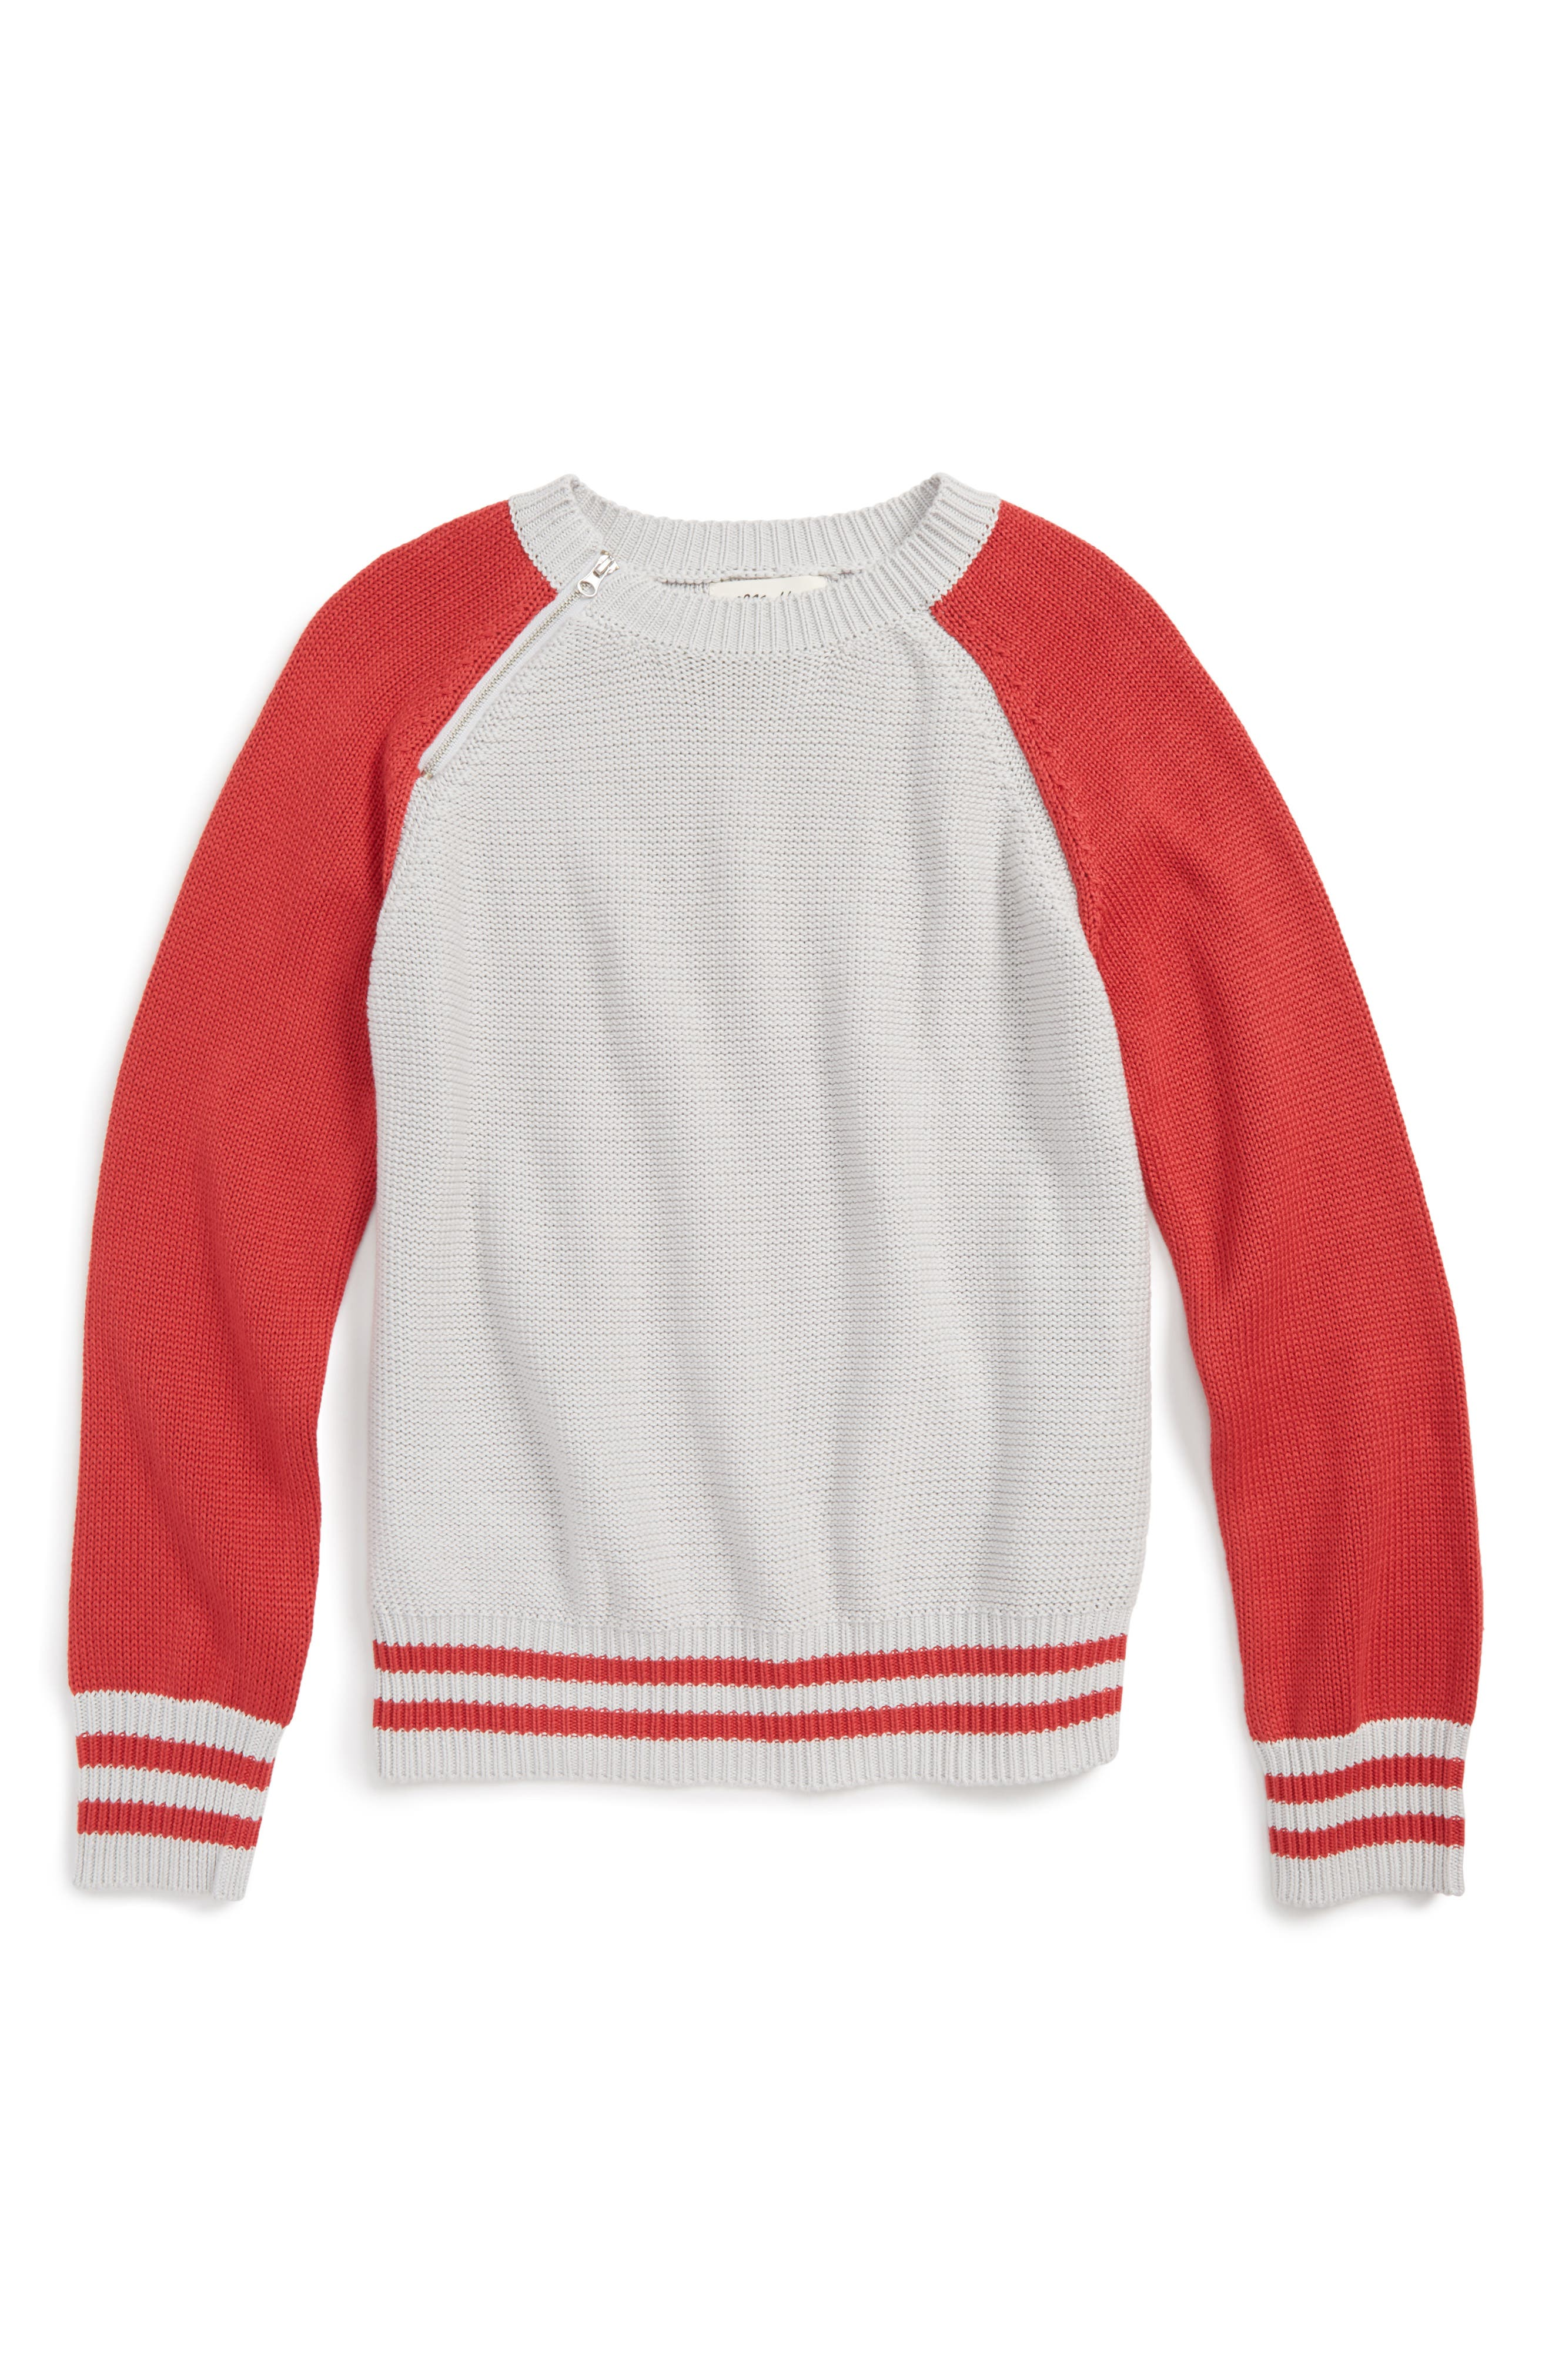 Colorblock Raglan Sweater,                             Main thumbnail 1, color,                             600